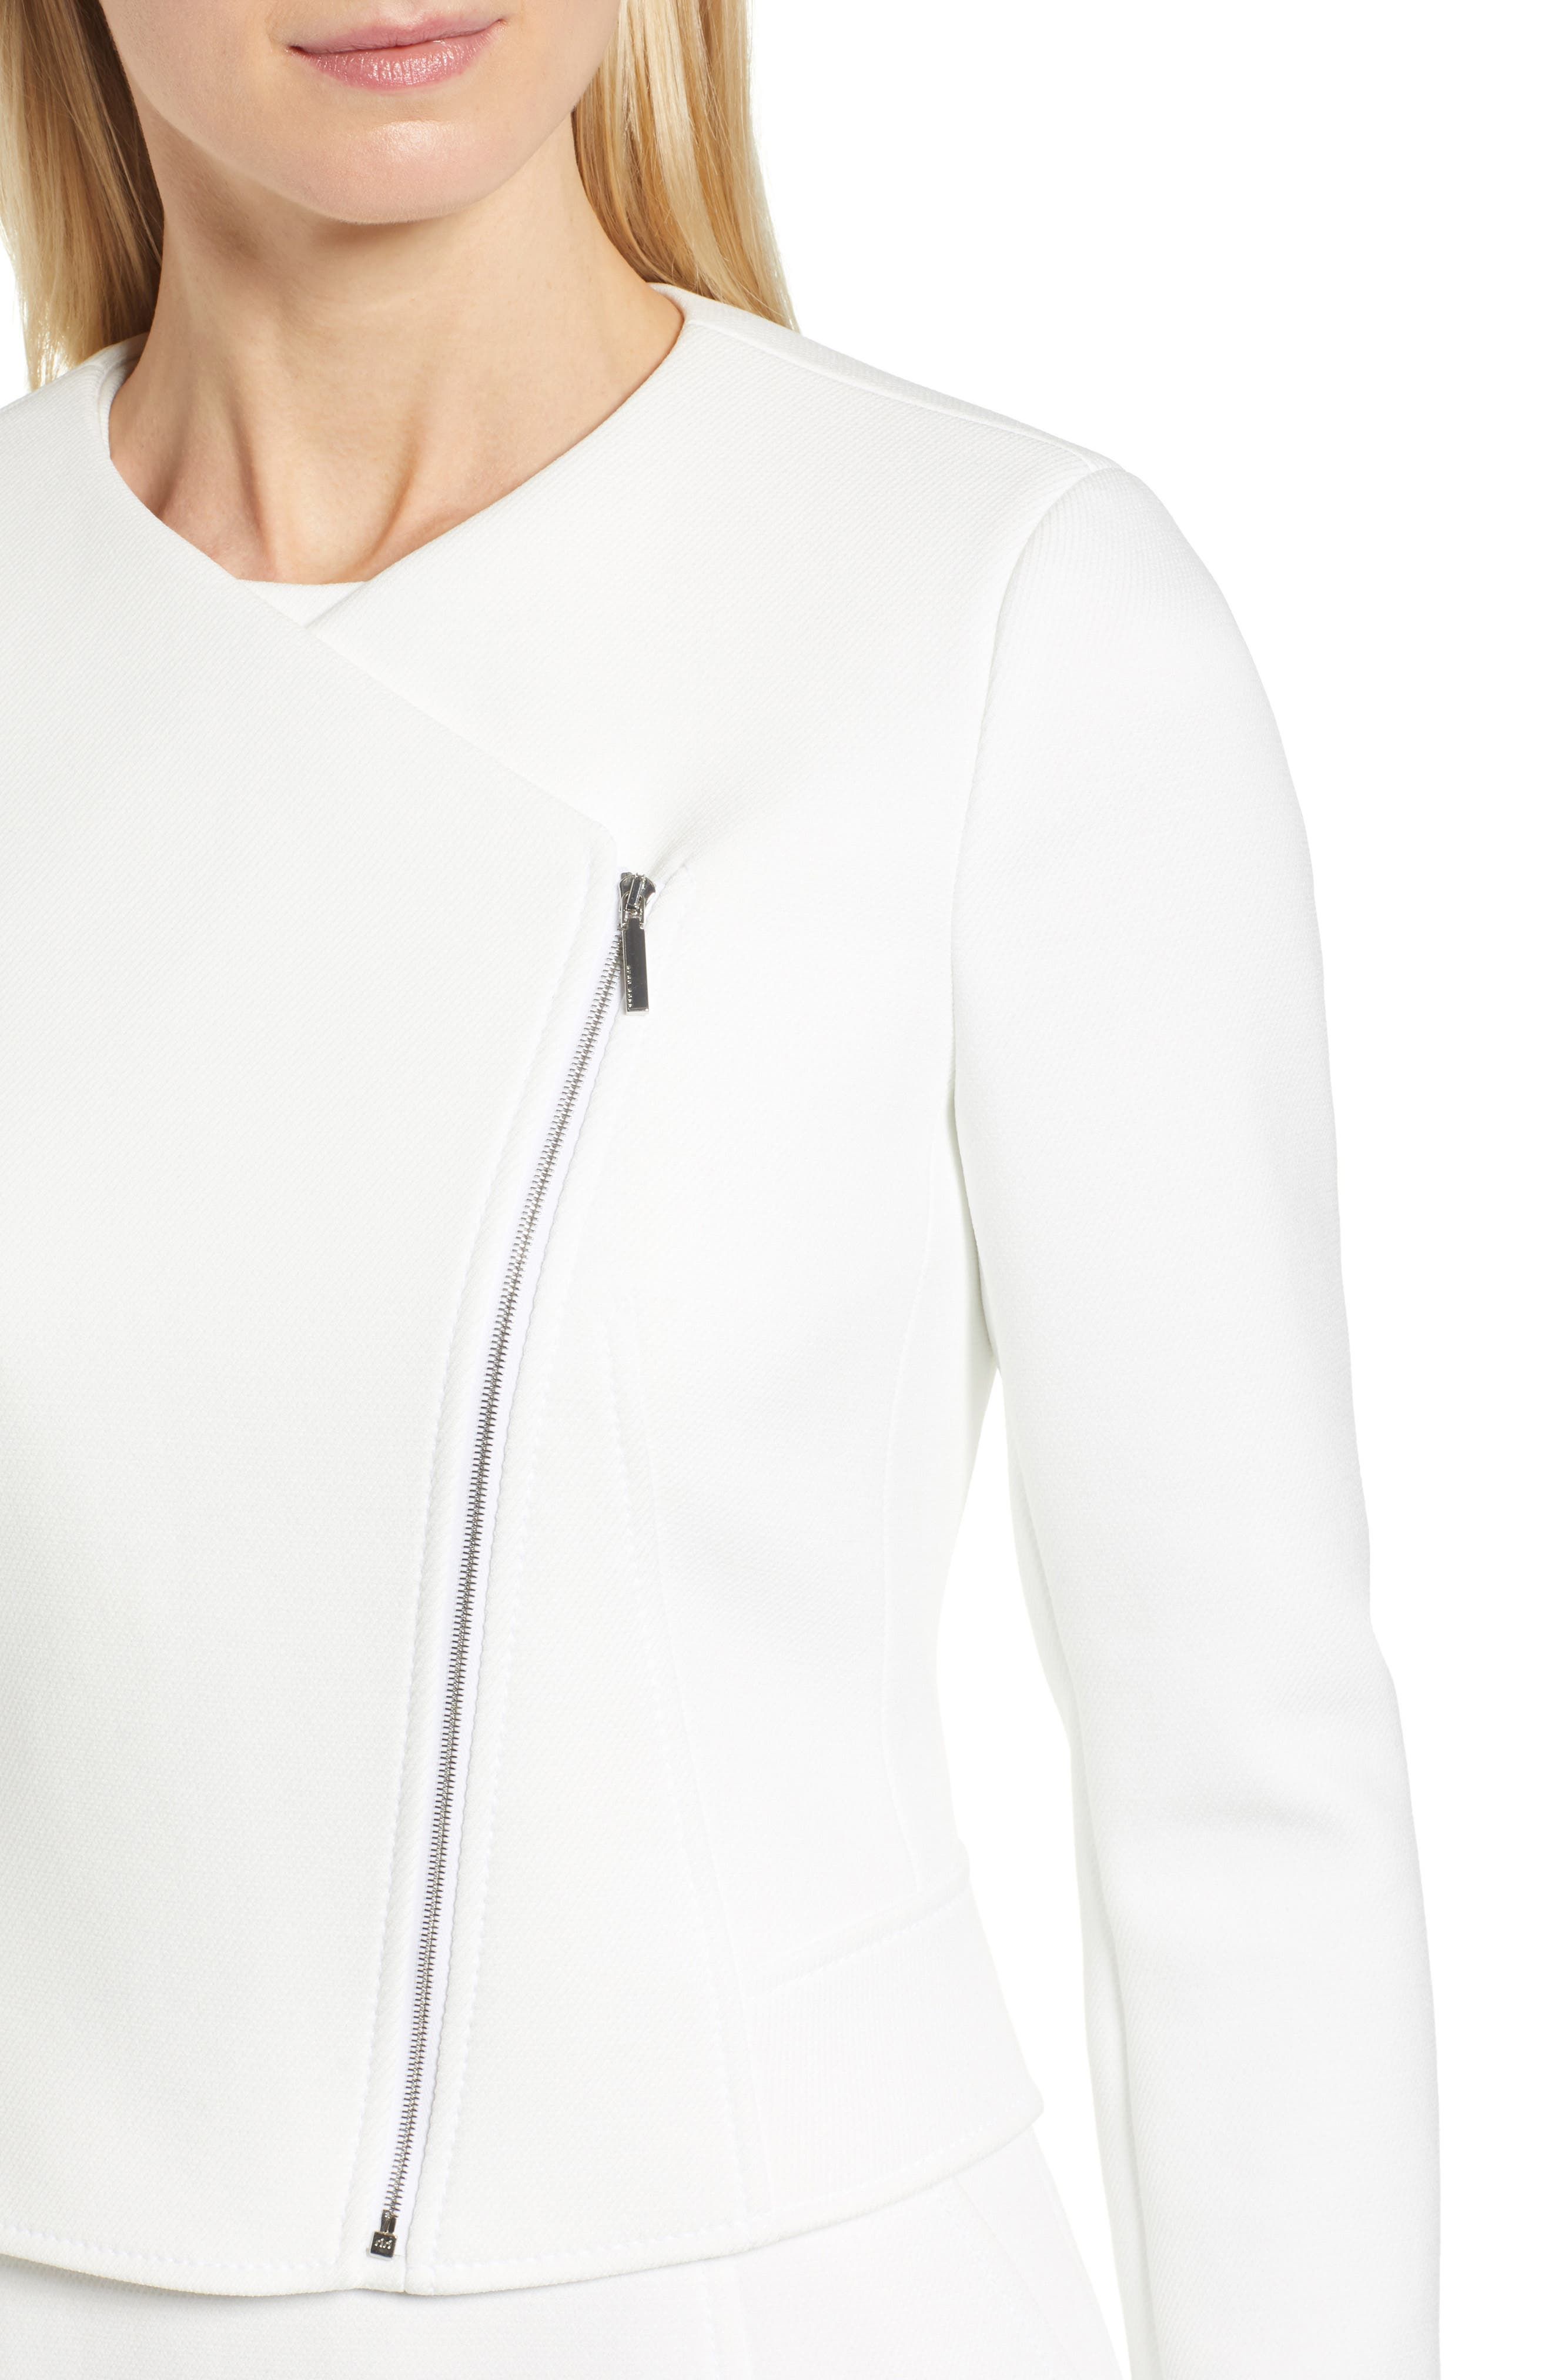 Juleama Compact Twill Asymmetrical Zip Jacket,                             Alternate thumbnail 4, color,